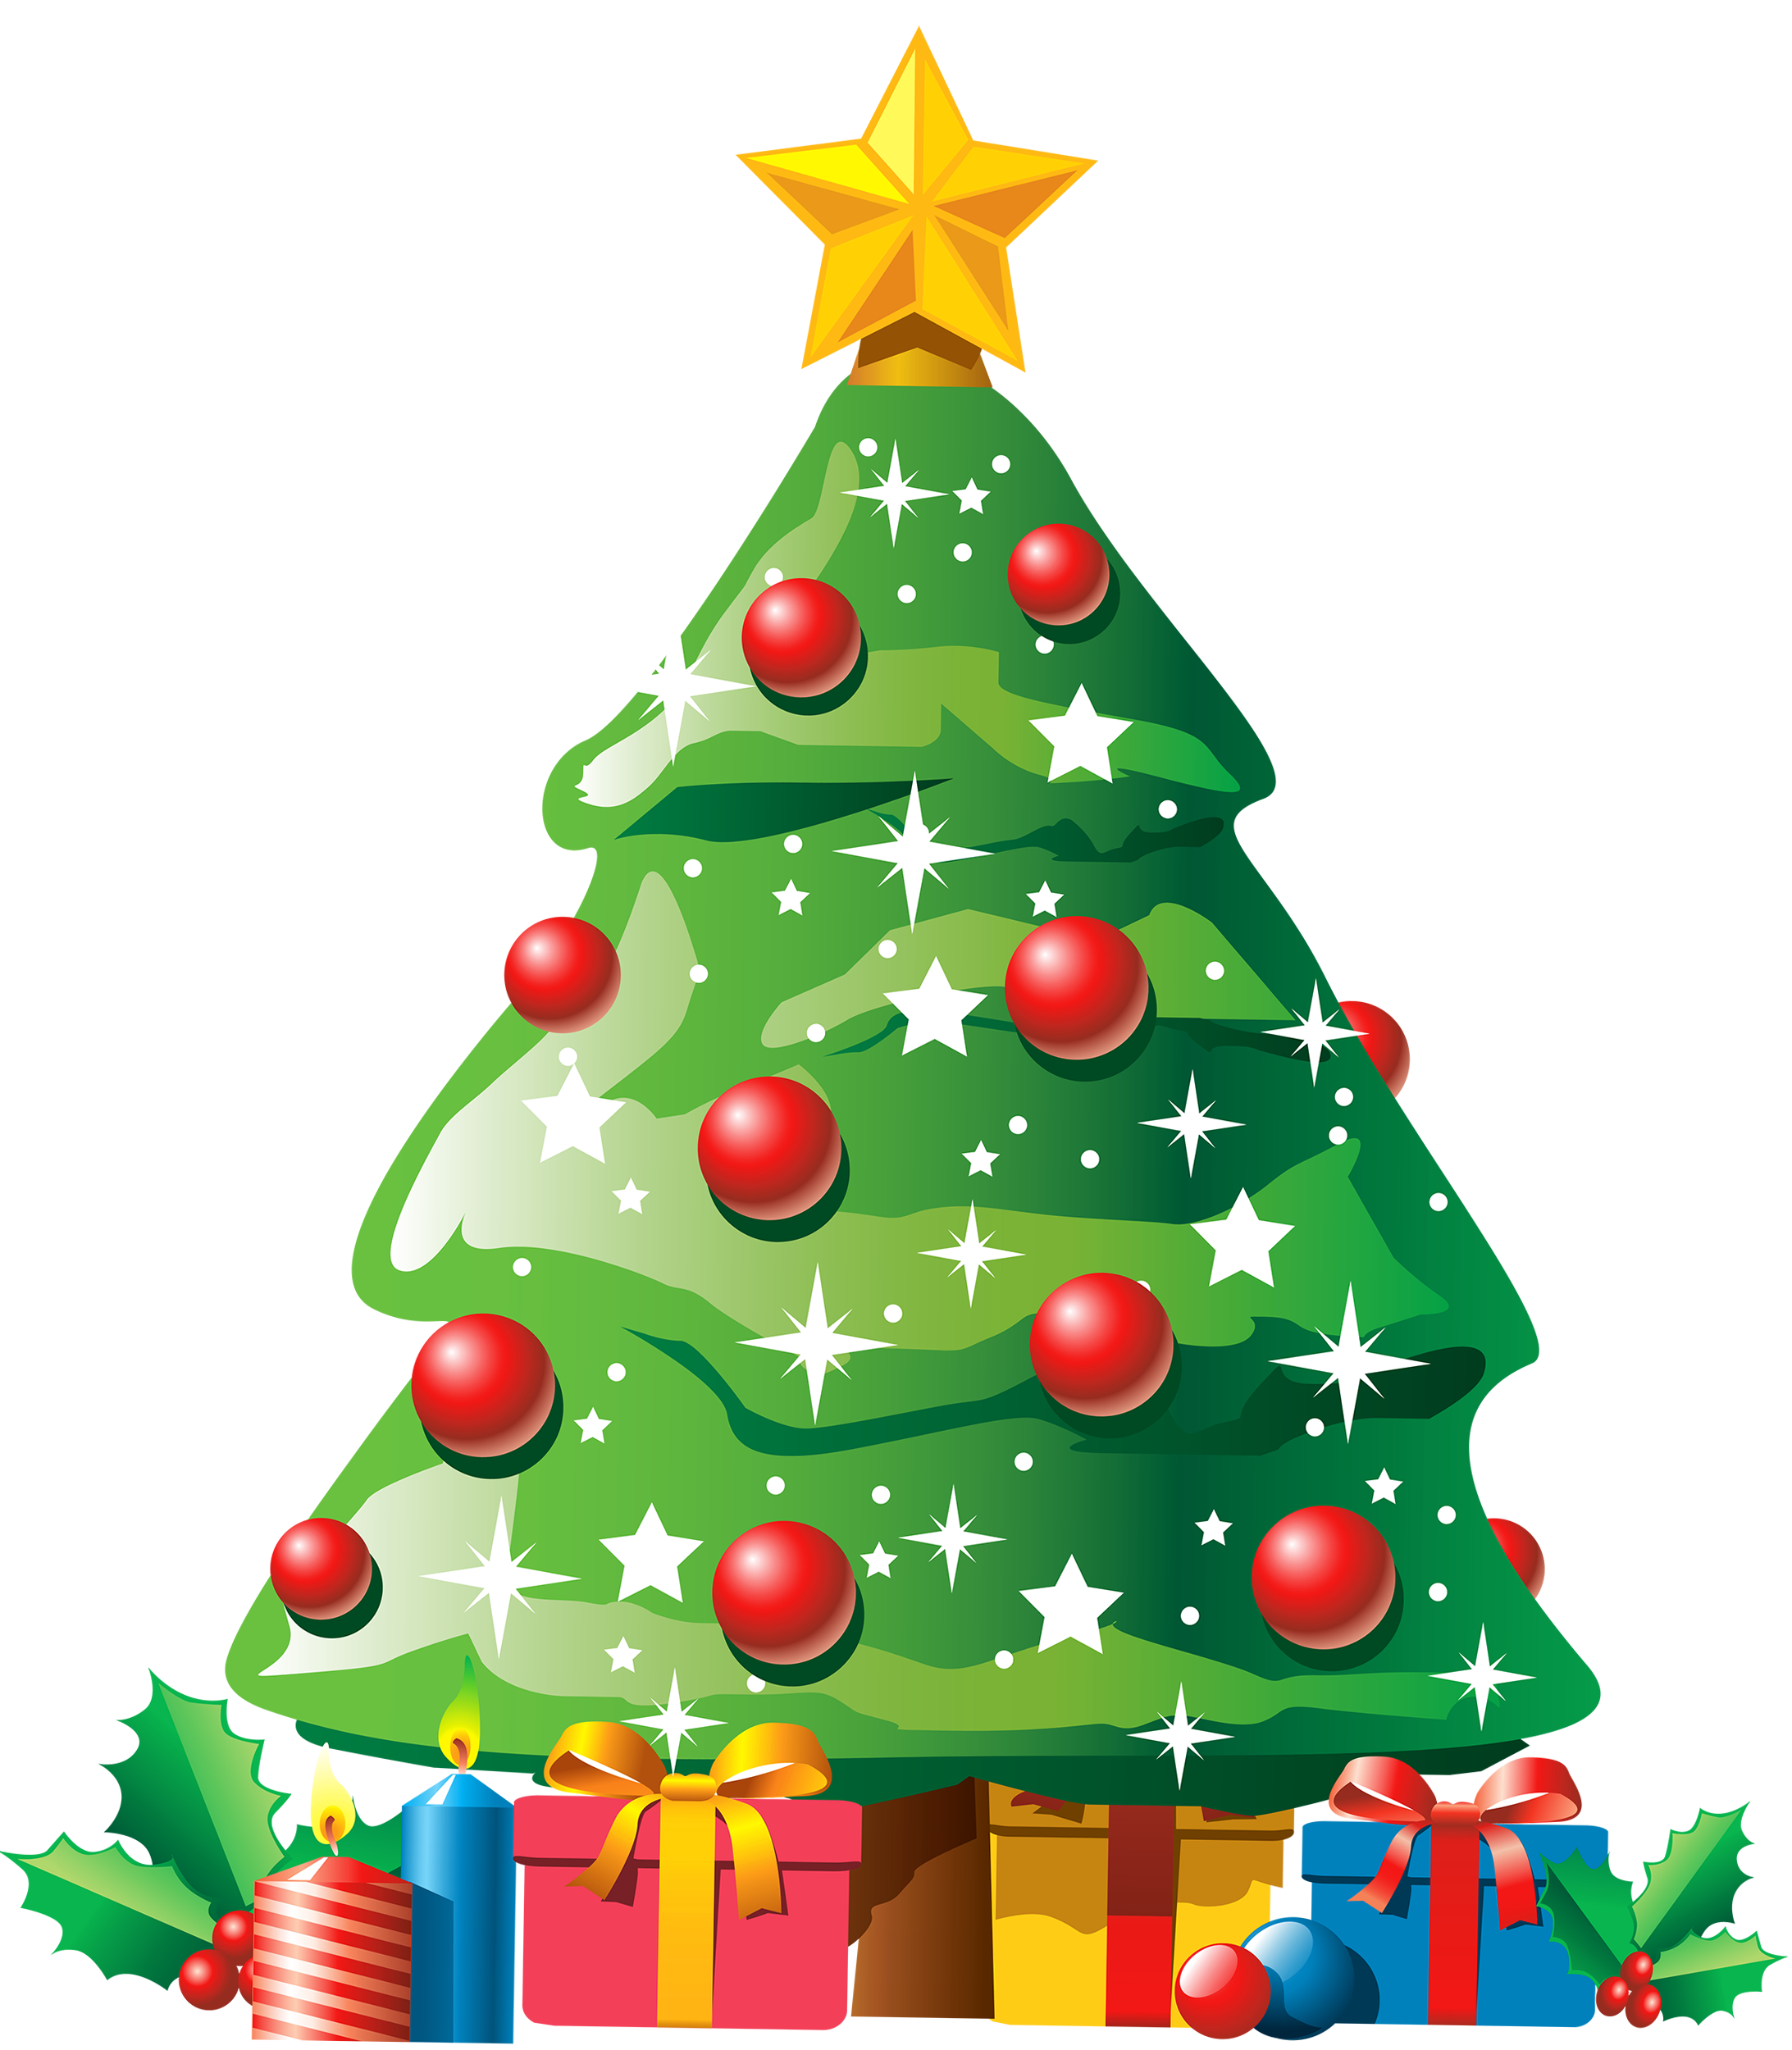 Less Stressed Thanksgiving Christmas Tree Drawing Christmas Tree Images Animated Christmas Tree